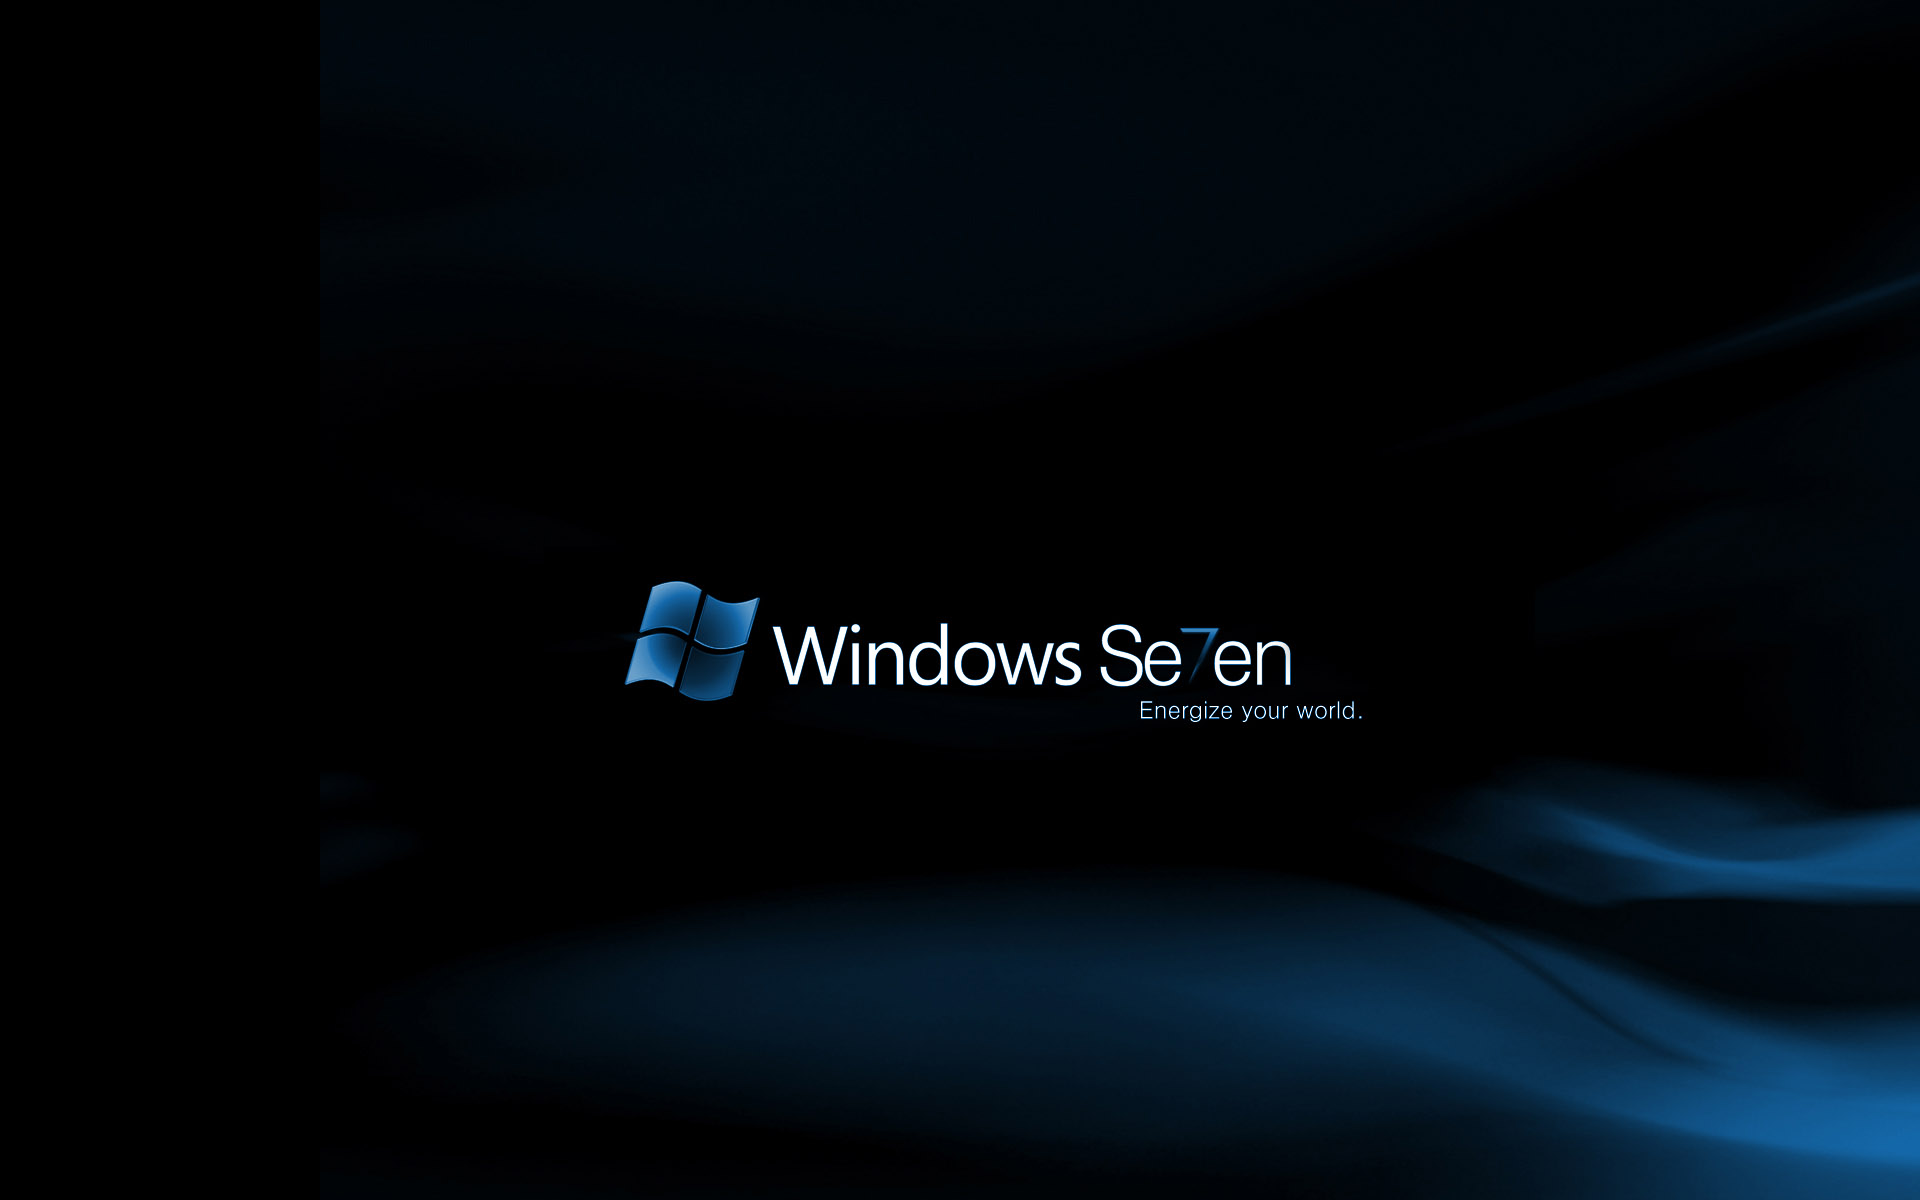 Windows 7 wallpaper best download 2 for Architecture wallpaper windows 7